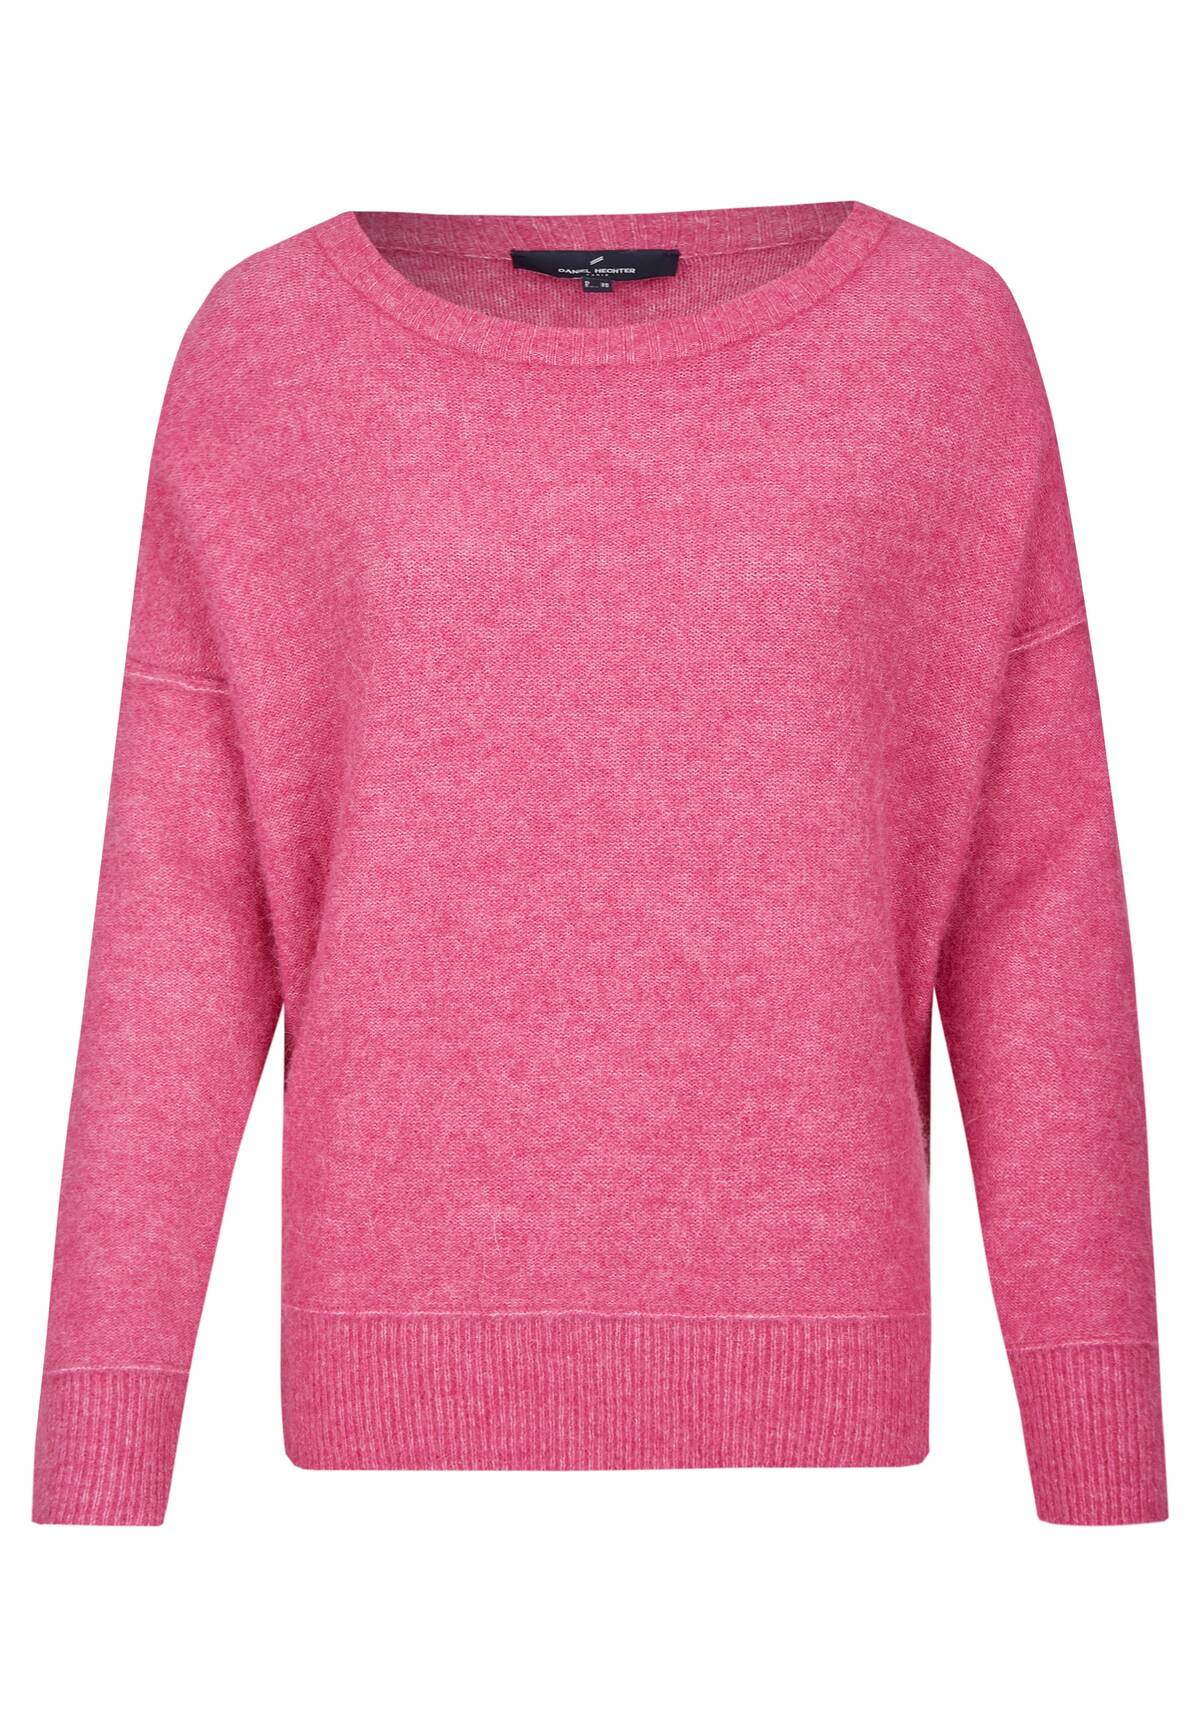 Flauschiger Pullover / Cozy Jumper